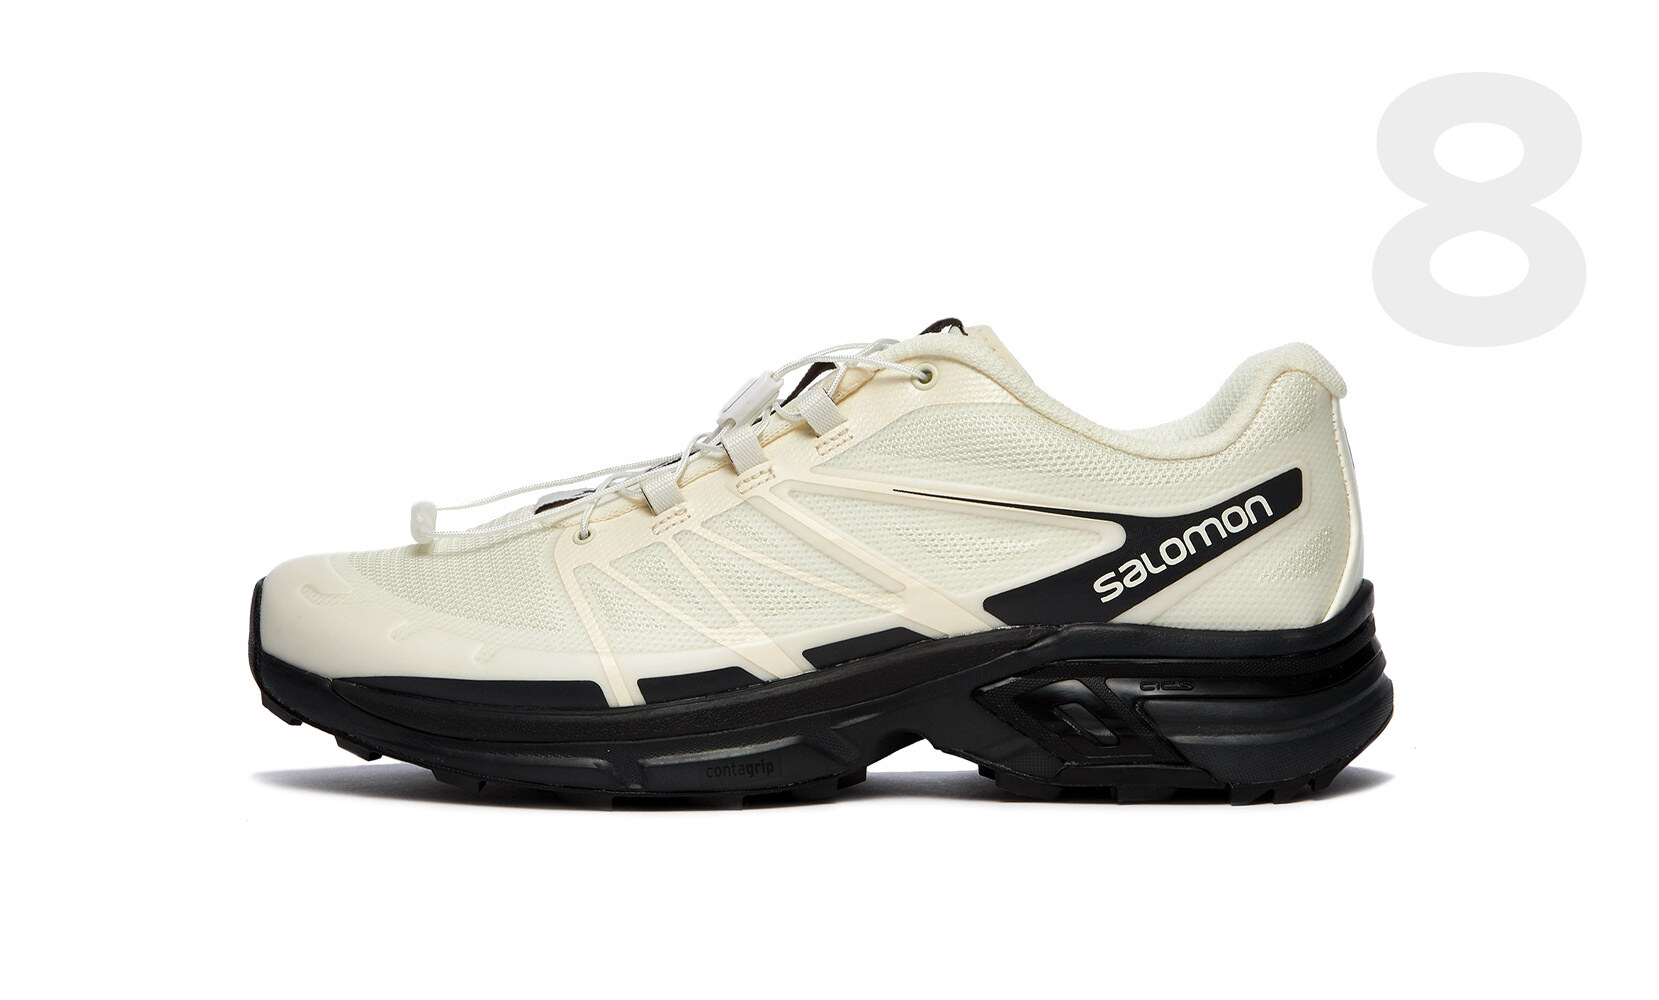 Salomon XT-Wings 2 Advanced sneakers